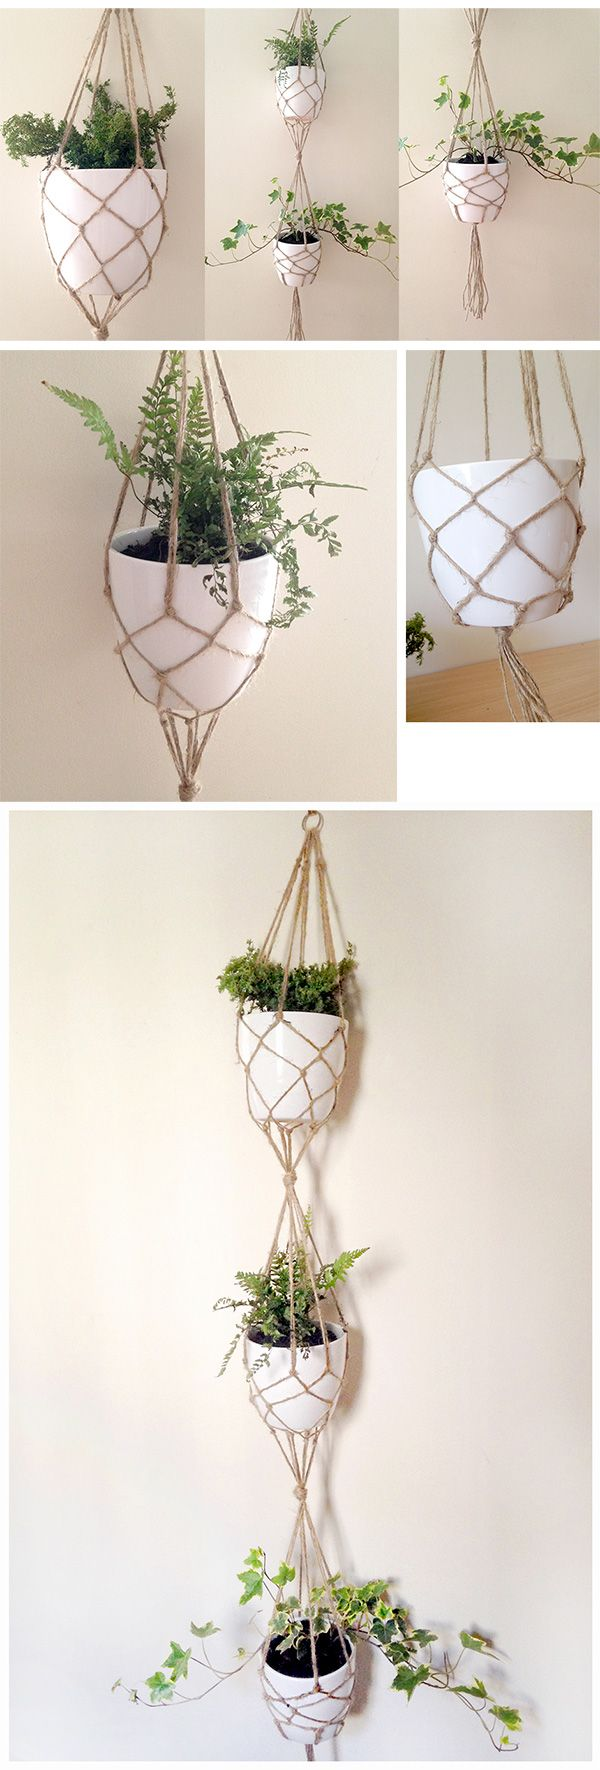 DIY VERTICAL PLANT HANGER. I really love macramé plant hangers - they're a great way to add some green to the home and are perfect for growing herbs or even your own edible flowers...